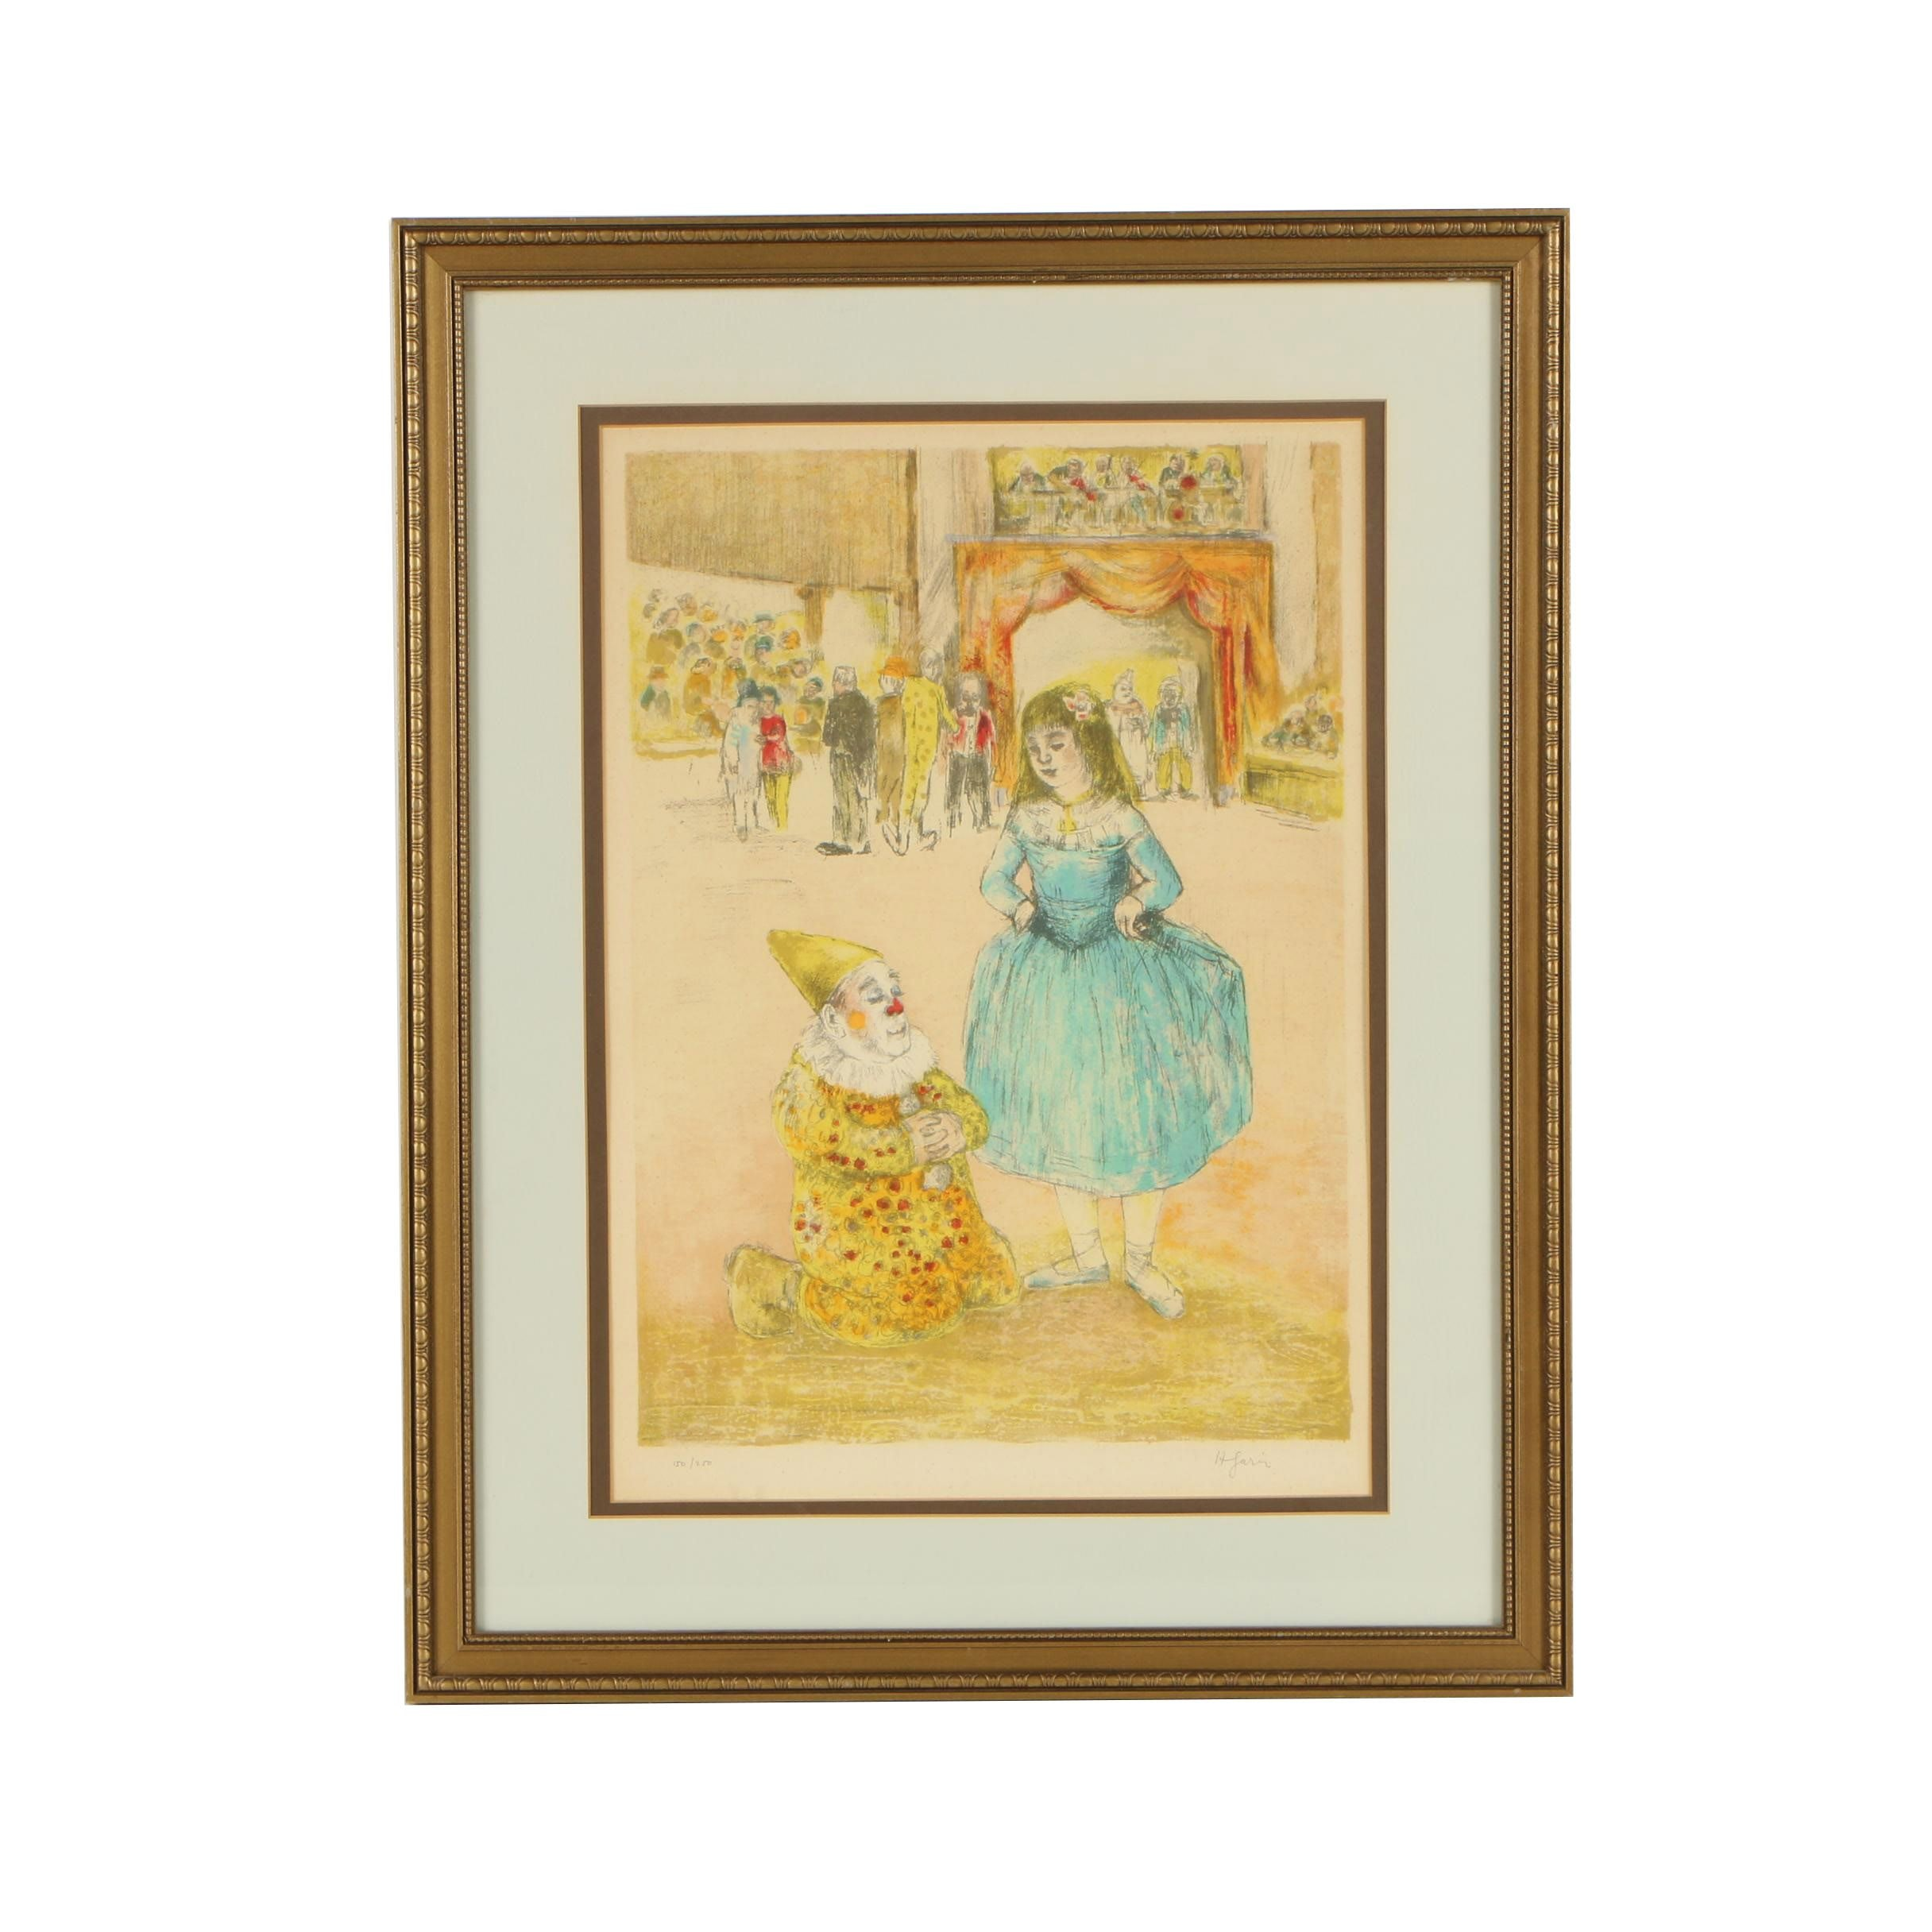 Color Lithograph of a Girl and Clown